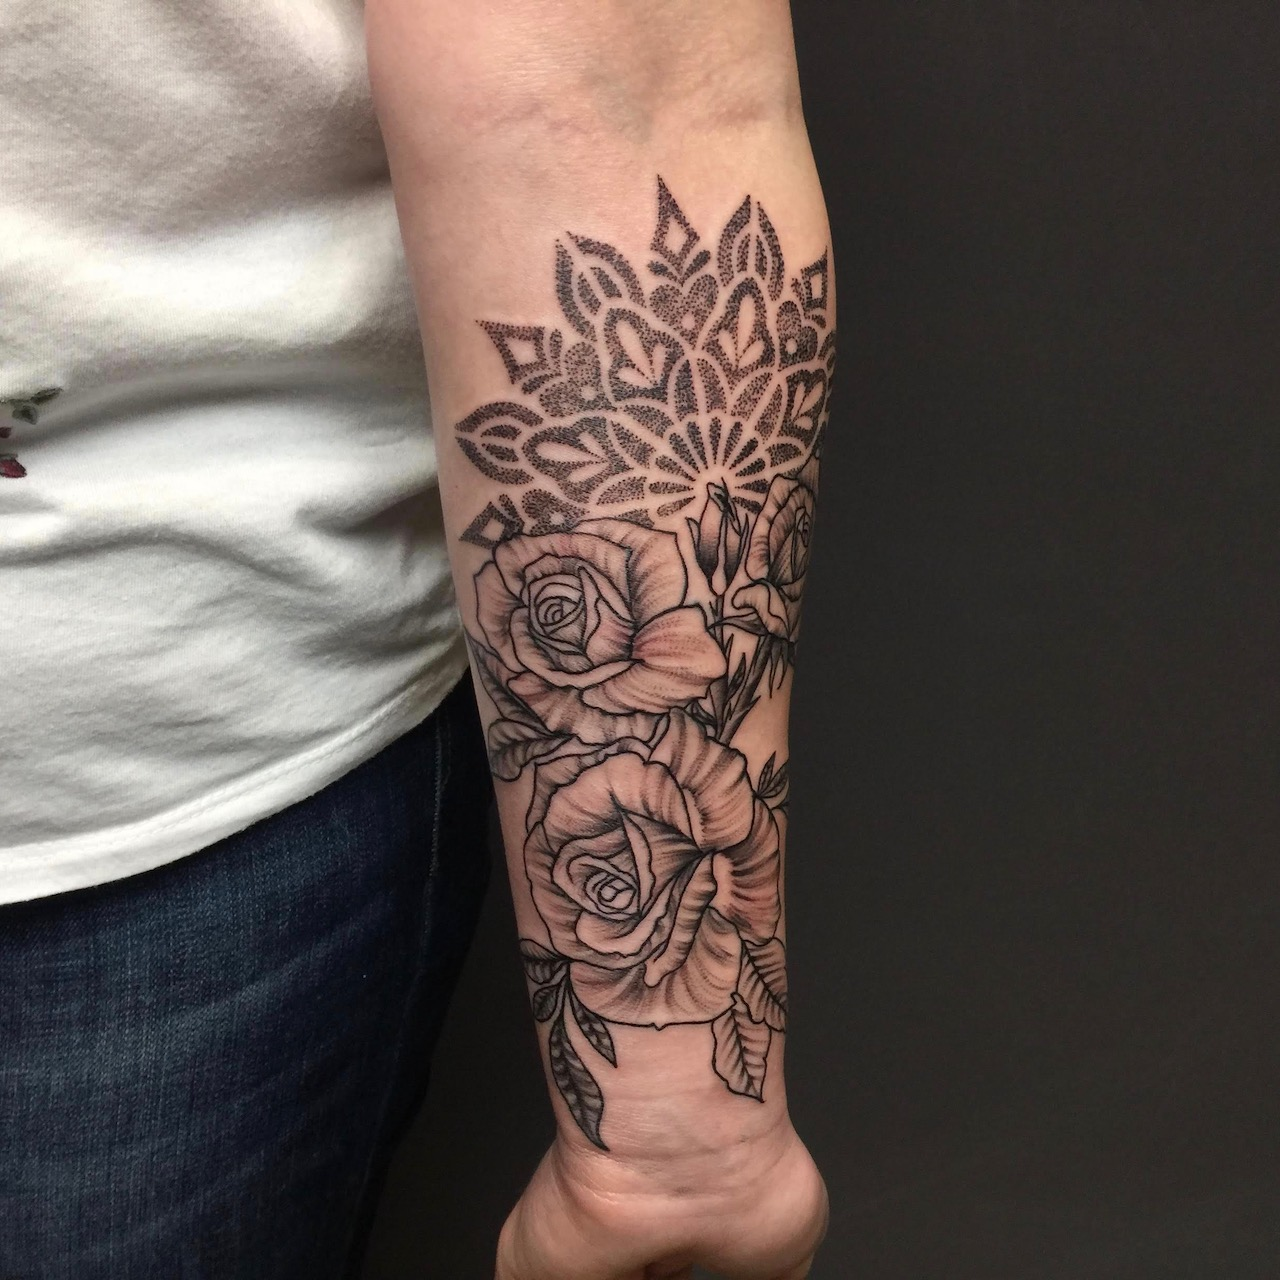 Zone -Tattoo -Dilo -Rosen -Dot Work